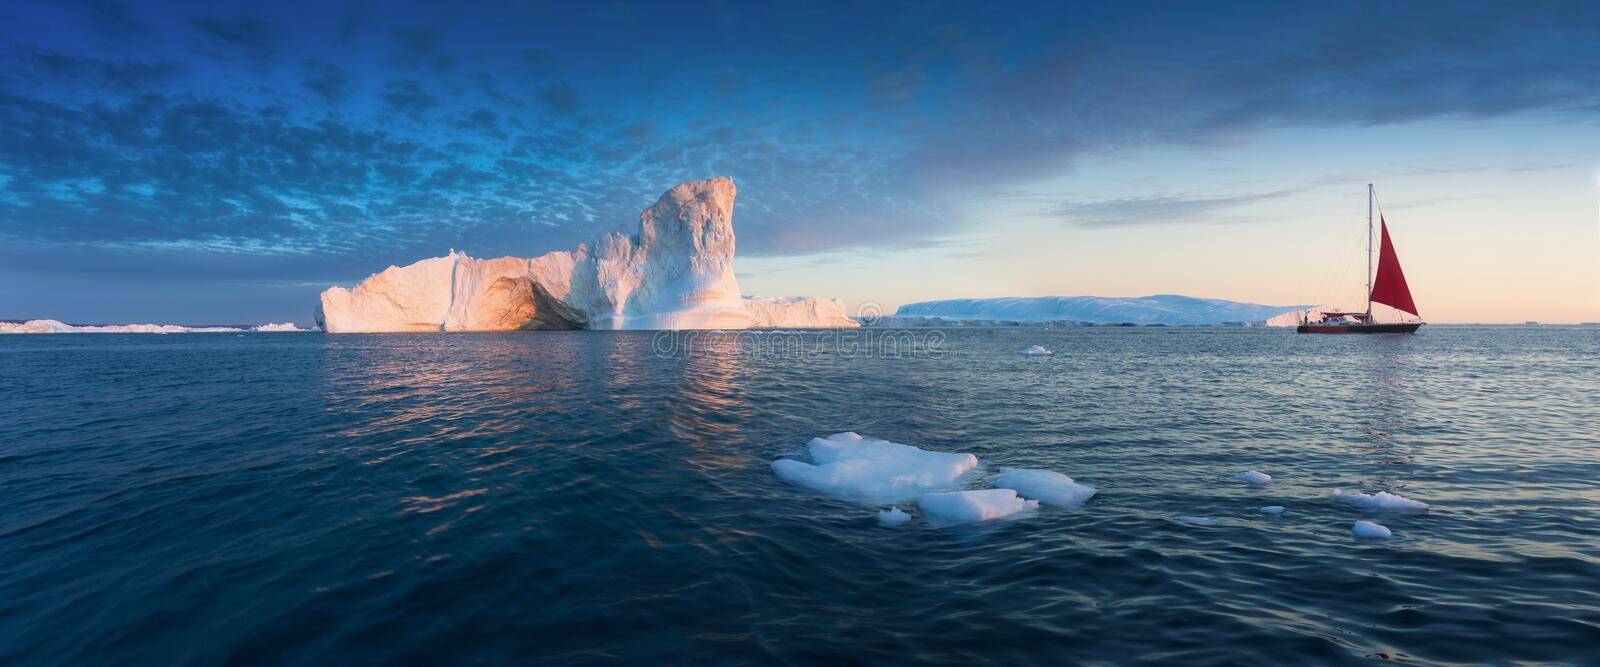 Little red sailboat cruising among floating icebergs in Disko Bay glacier during midnight sun season of polar summer. Greenland royalty free stock images